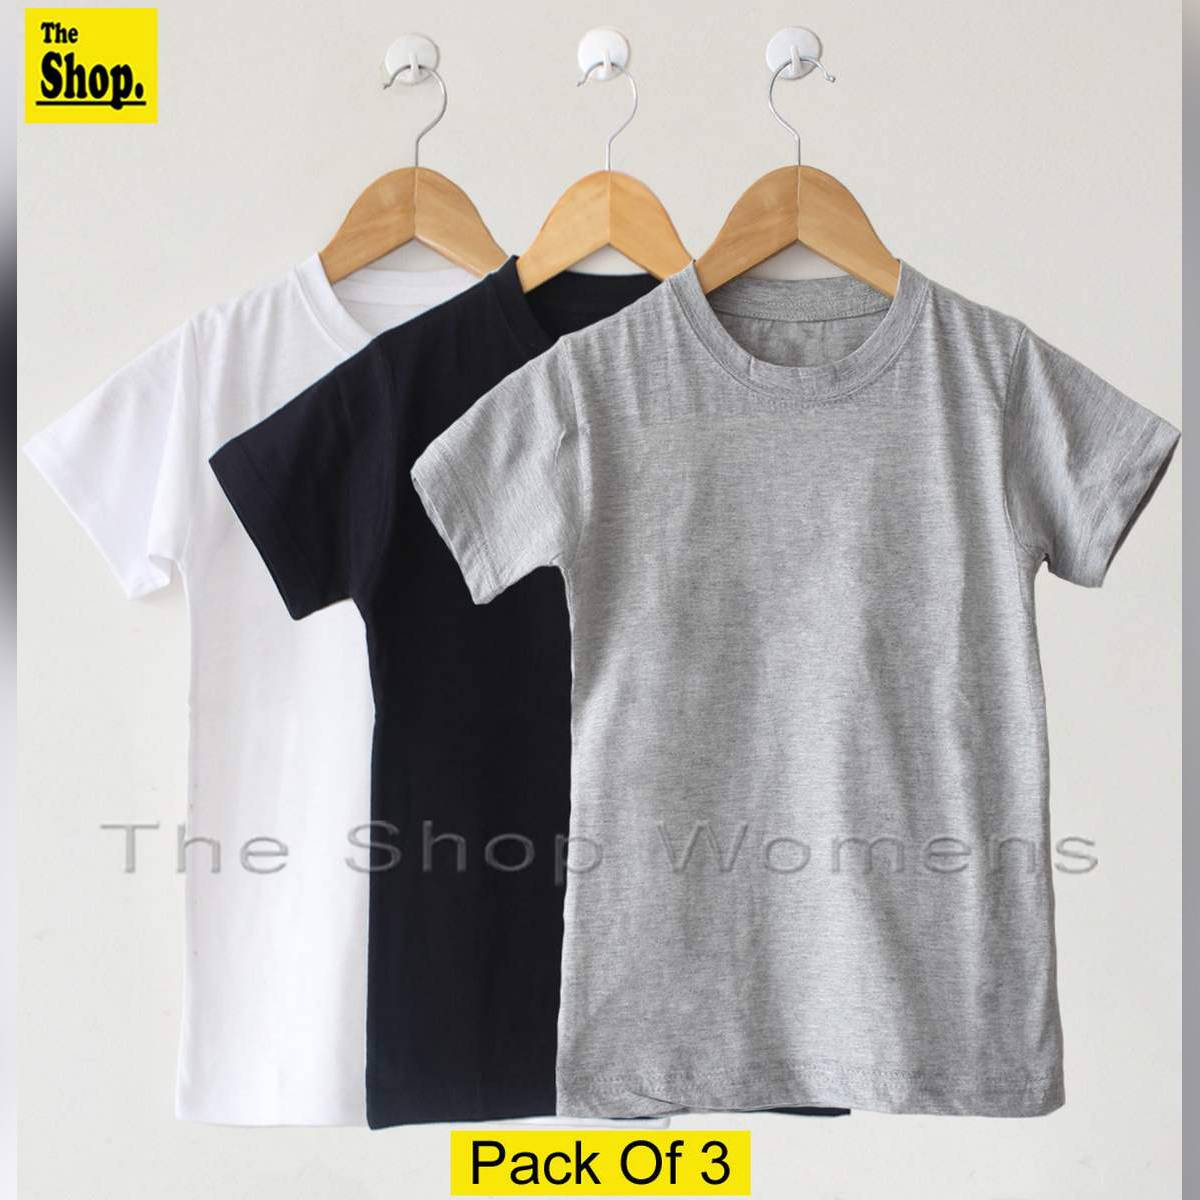 The Shop - White Black & Grey Basic T Shirts For Women - MB-GT3